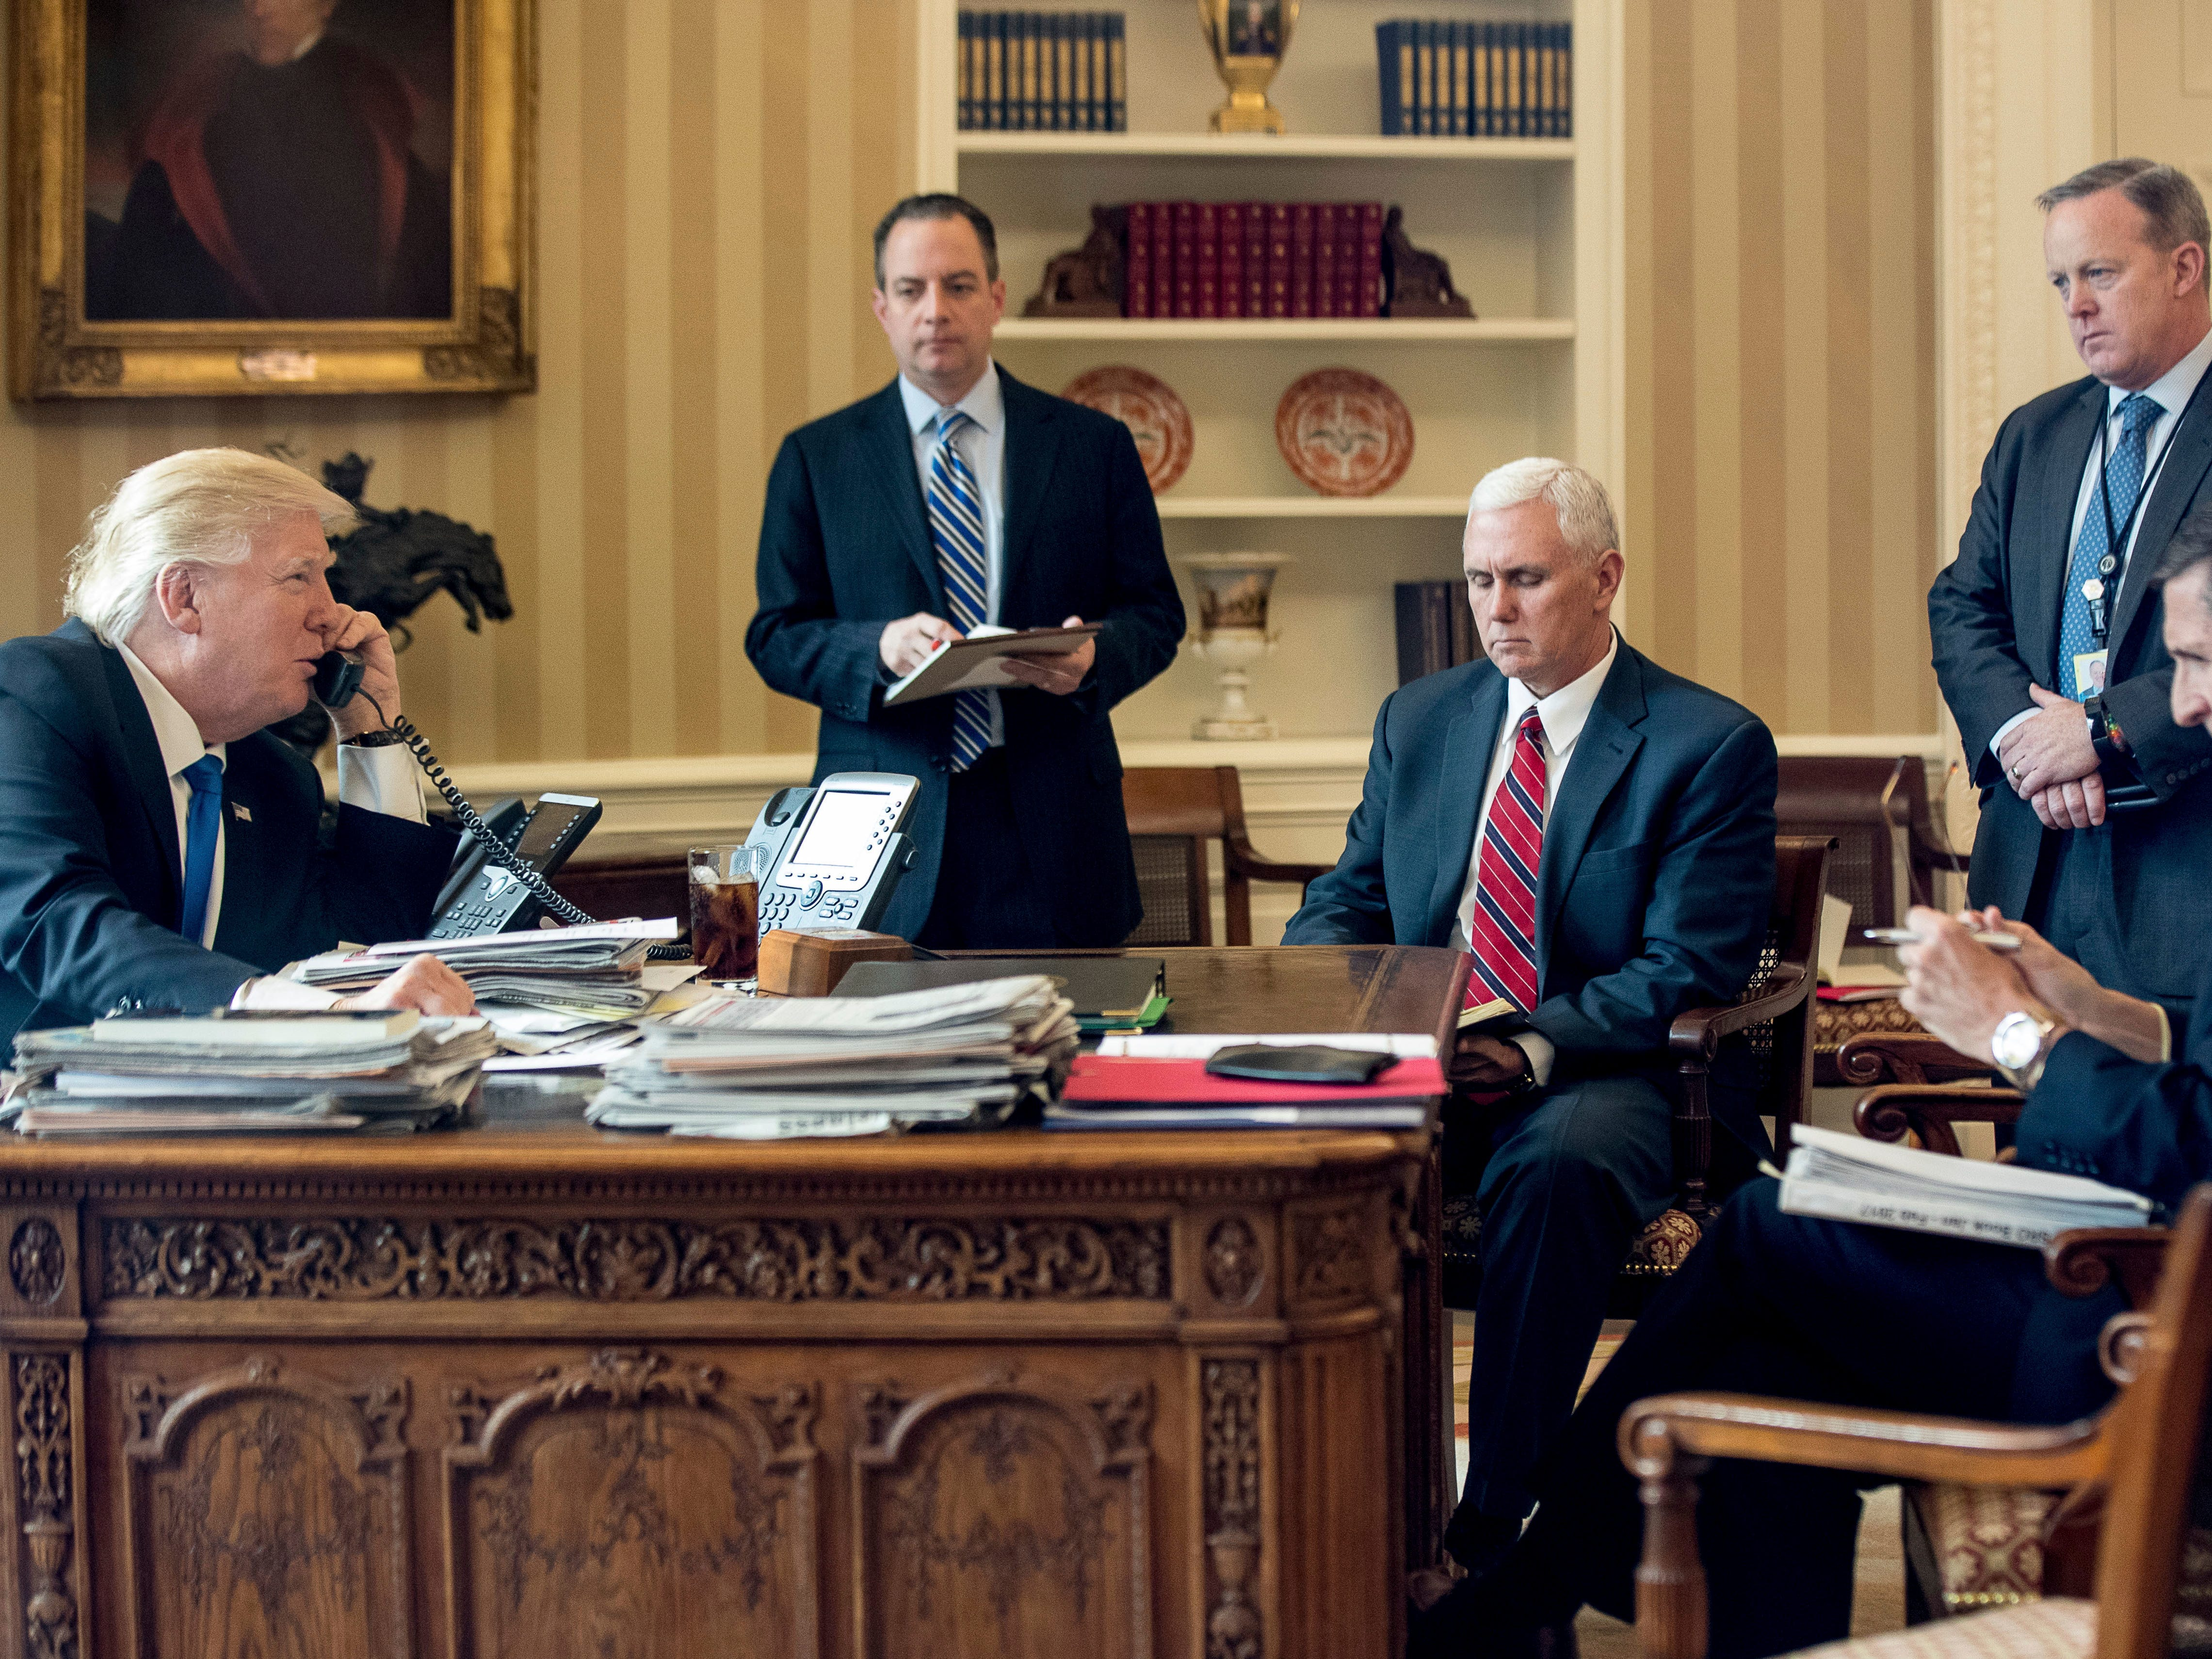 President Donald Trump (from left), accompanied by Chief of Staff Reince Priebus, Vice President Mike Pence, White House press secretary Sean Spicer and National Security Adviser Michael Flynn speaks on the phone with Russian President Vladimir Putin, in the Oval Office at the White House.